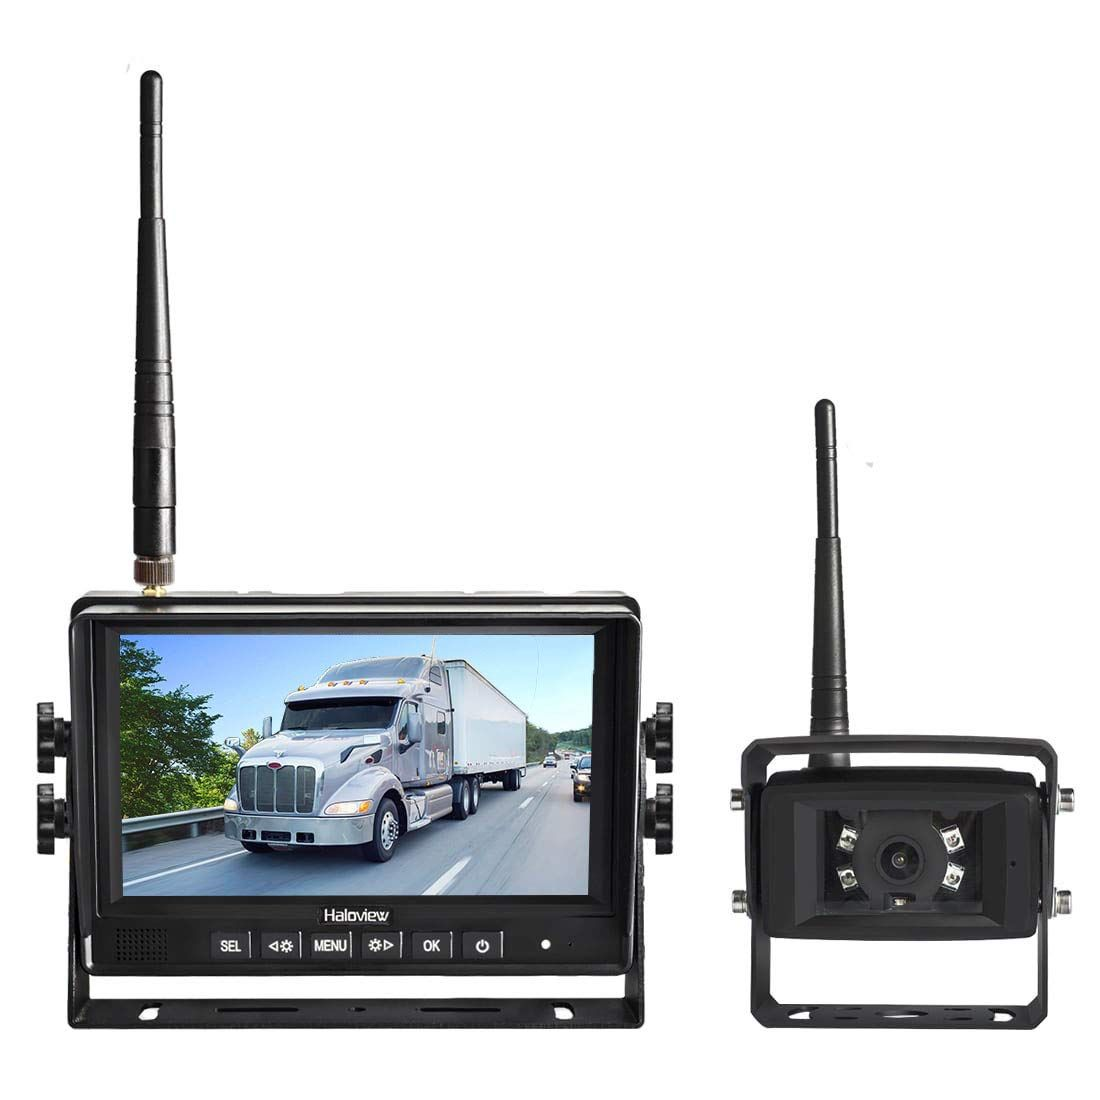 Digital Wireless Rear View Backup Camera System 7 Lcd For Rv